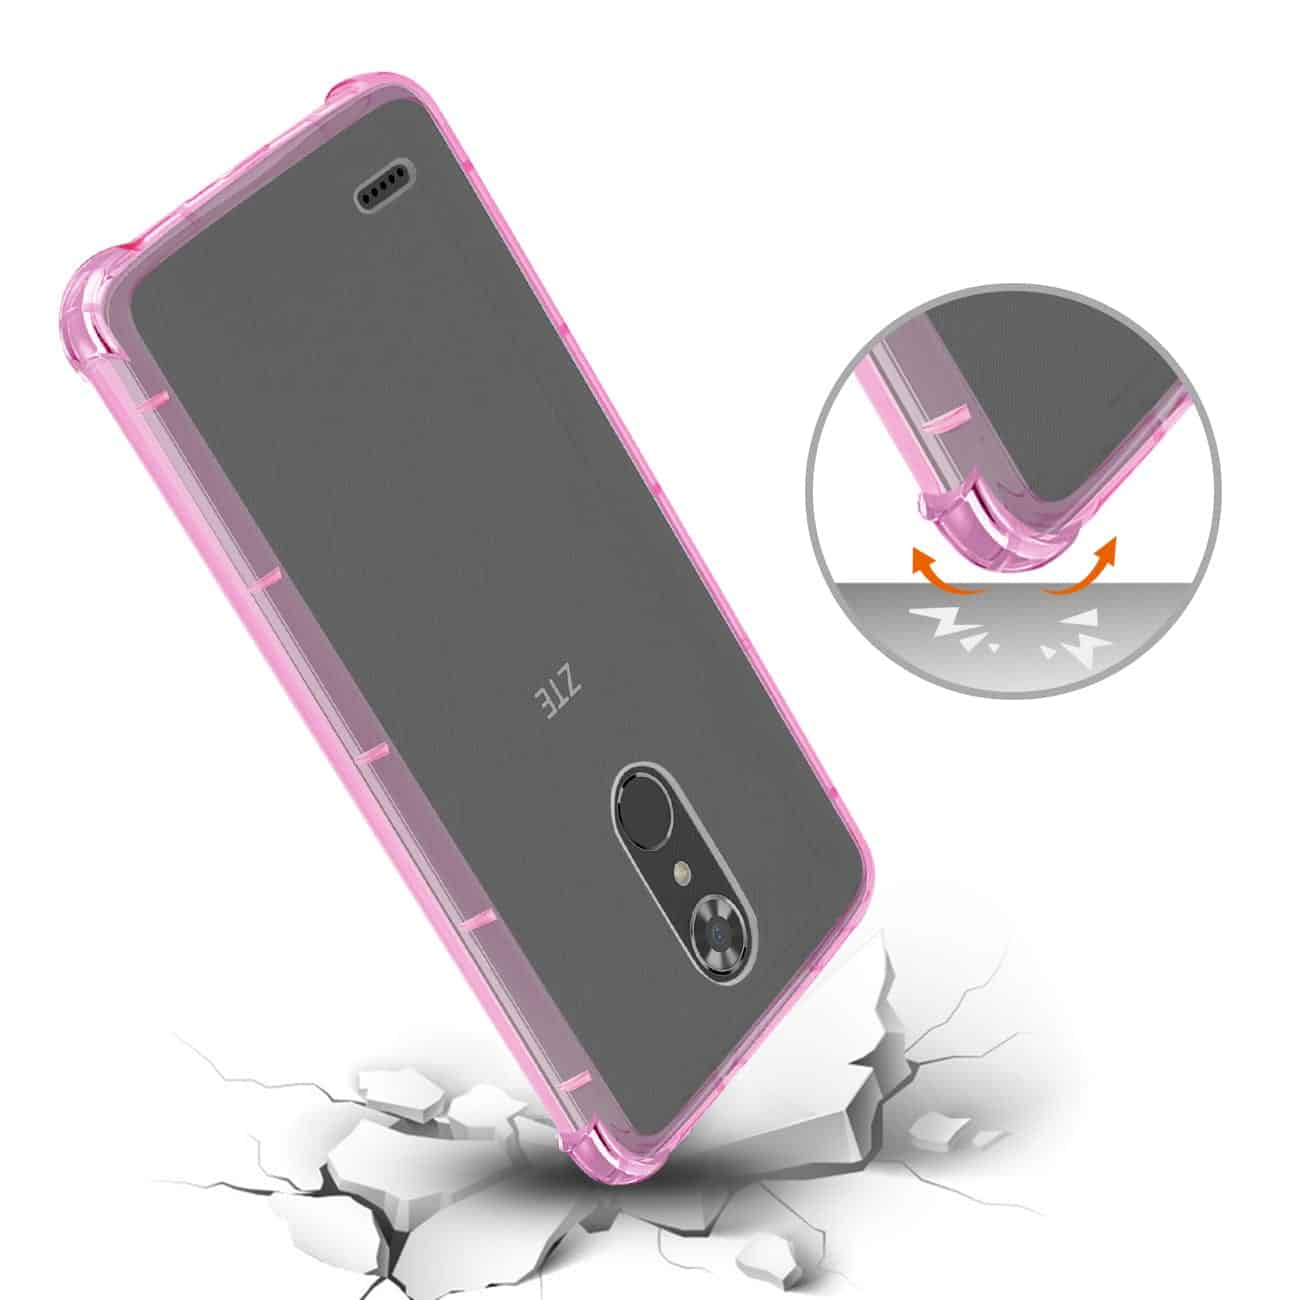 ZTE MAX XL/ N9560 CLEAR BUMPER CASE WITH AIR CUSHION PROTECTION IN CLEAR HOT PINK